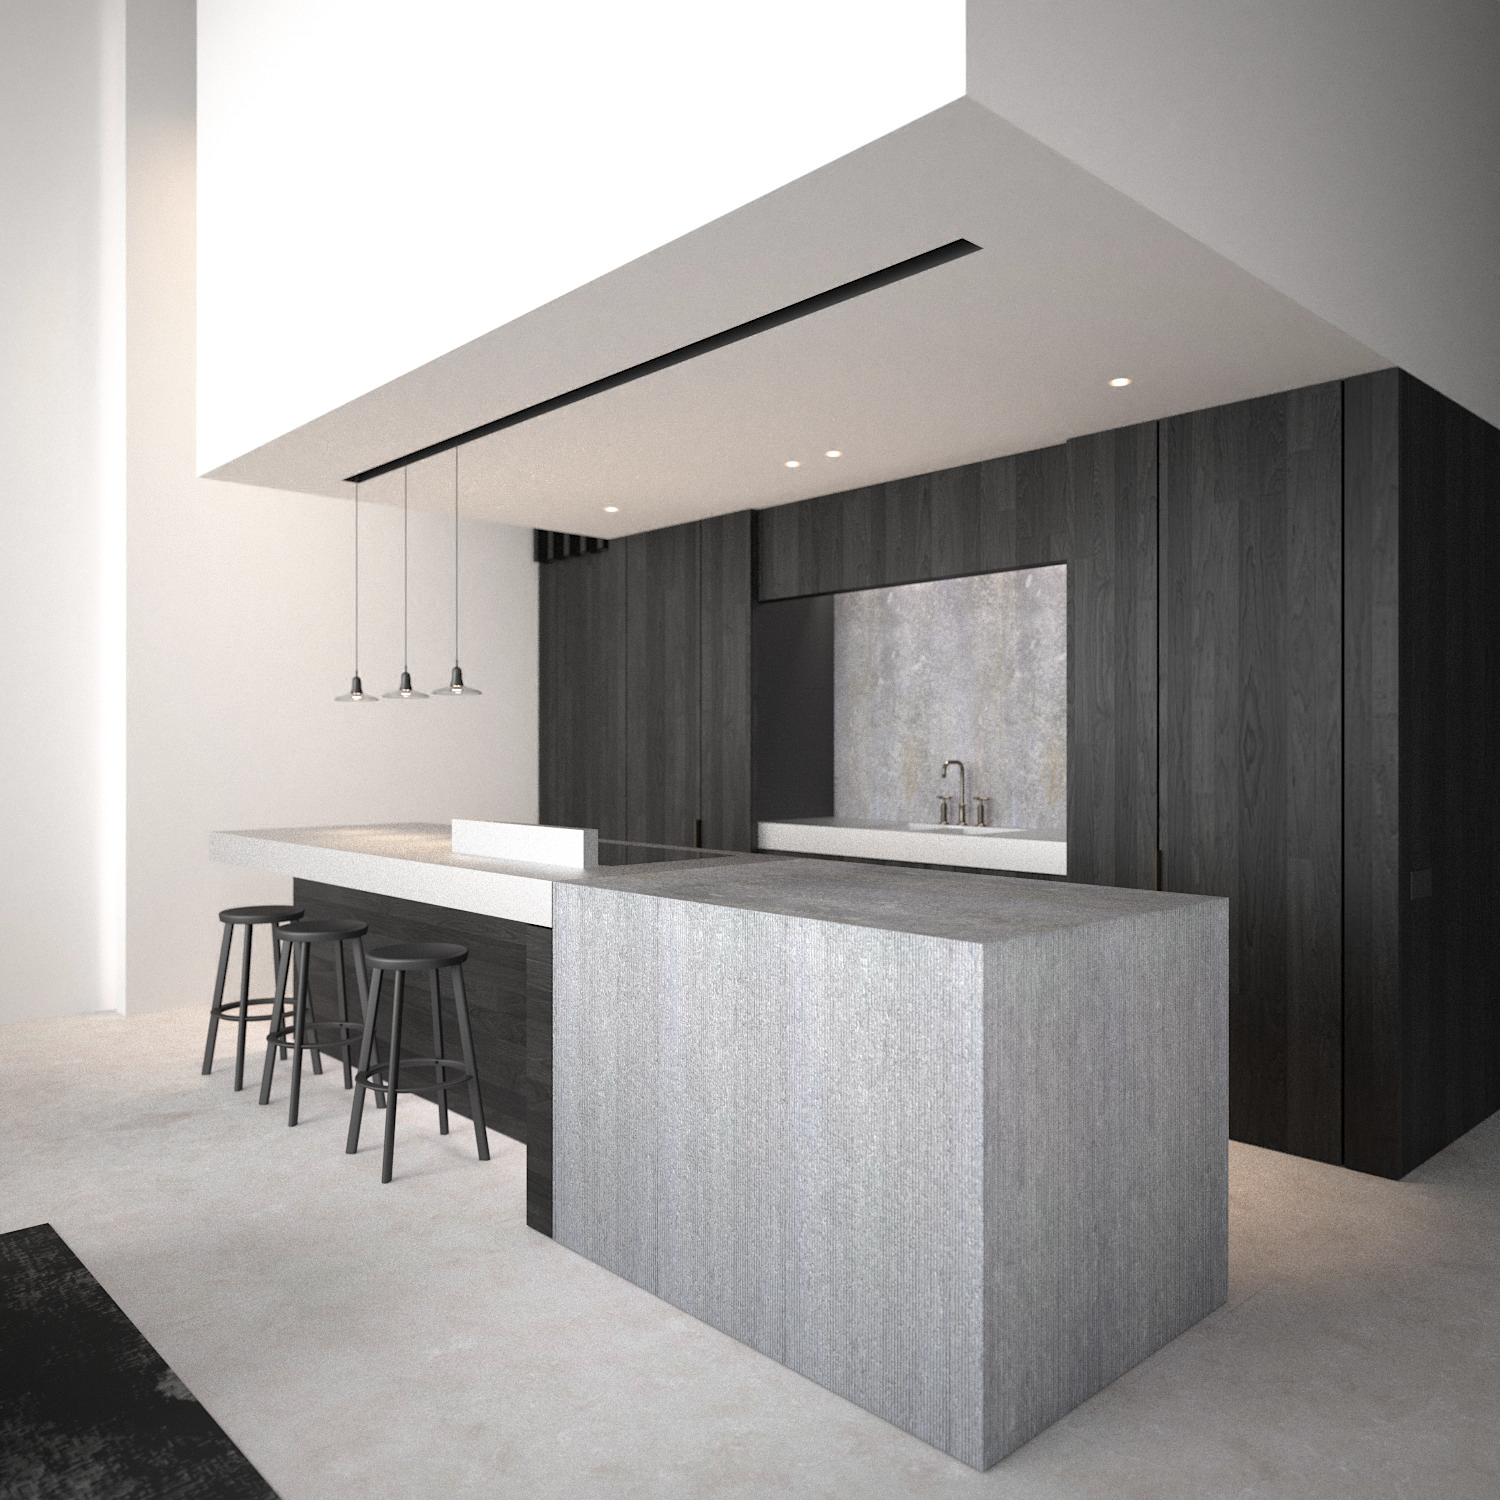 AD office interieurarchitect - Dark planked oak kitchen in combination with bluestone and brushed aluminium countertop. Pendants by Brokis.